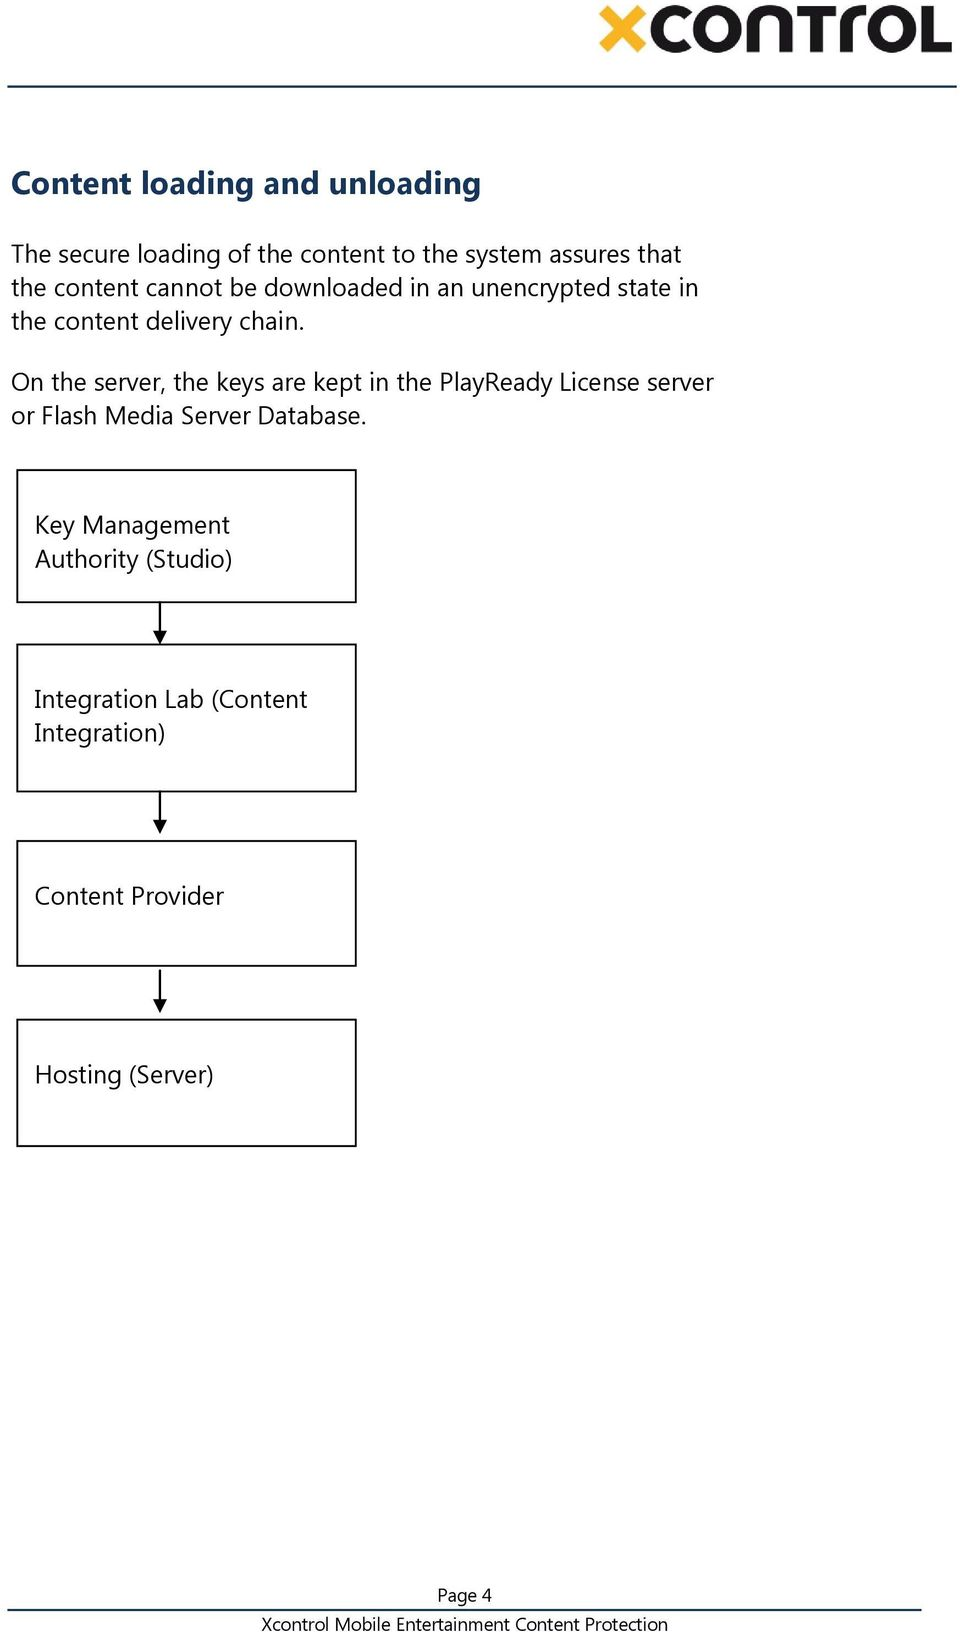 On the server, the keys are kept in the PlayReady License server or Flash Media Server Database.